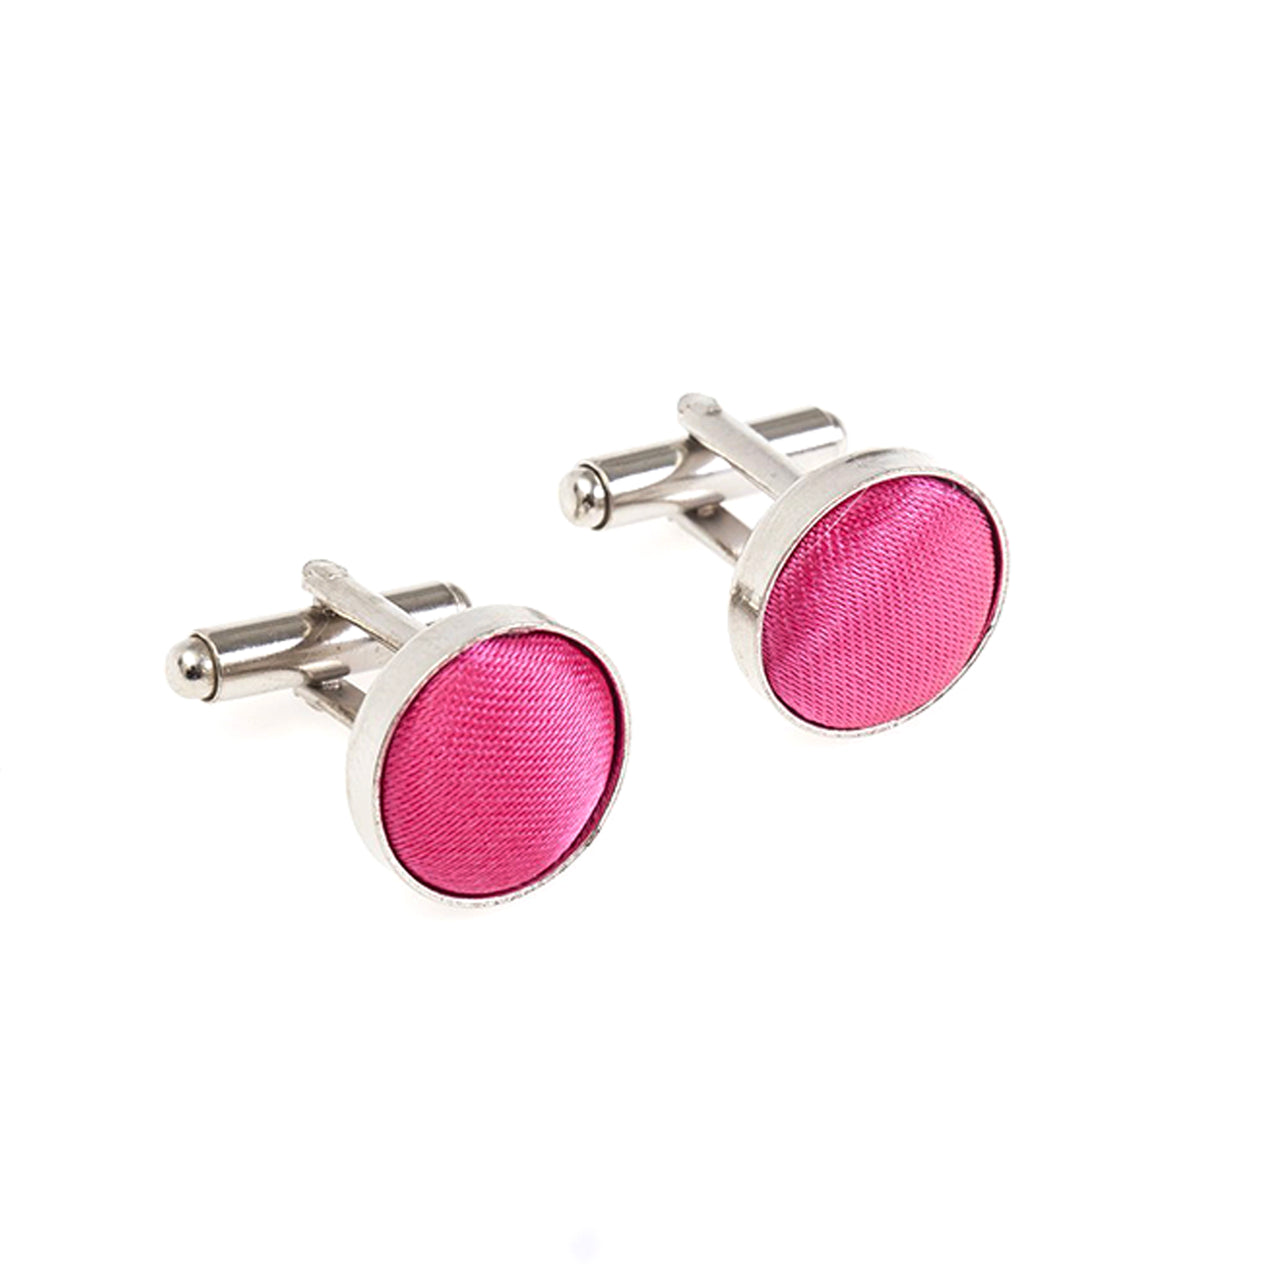 Fabric Cufflinks - Hot Pink